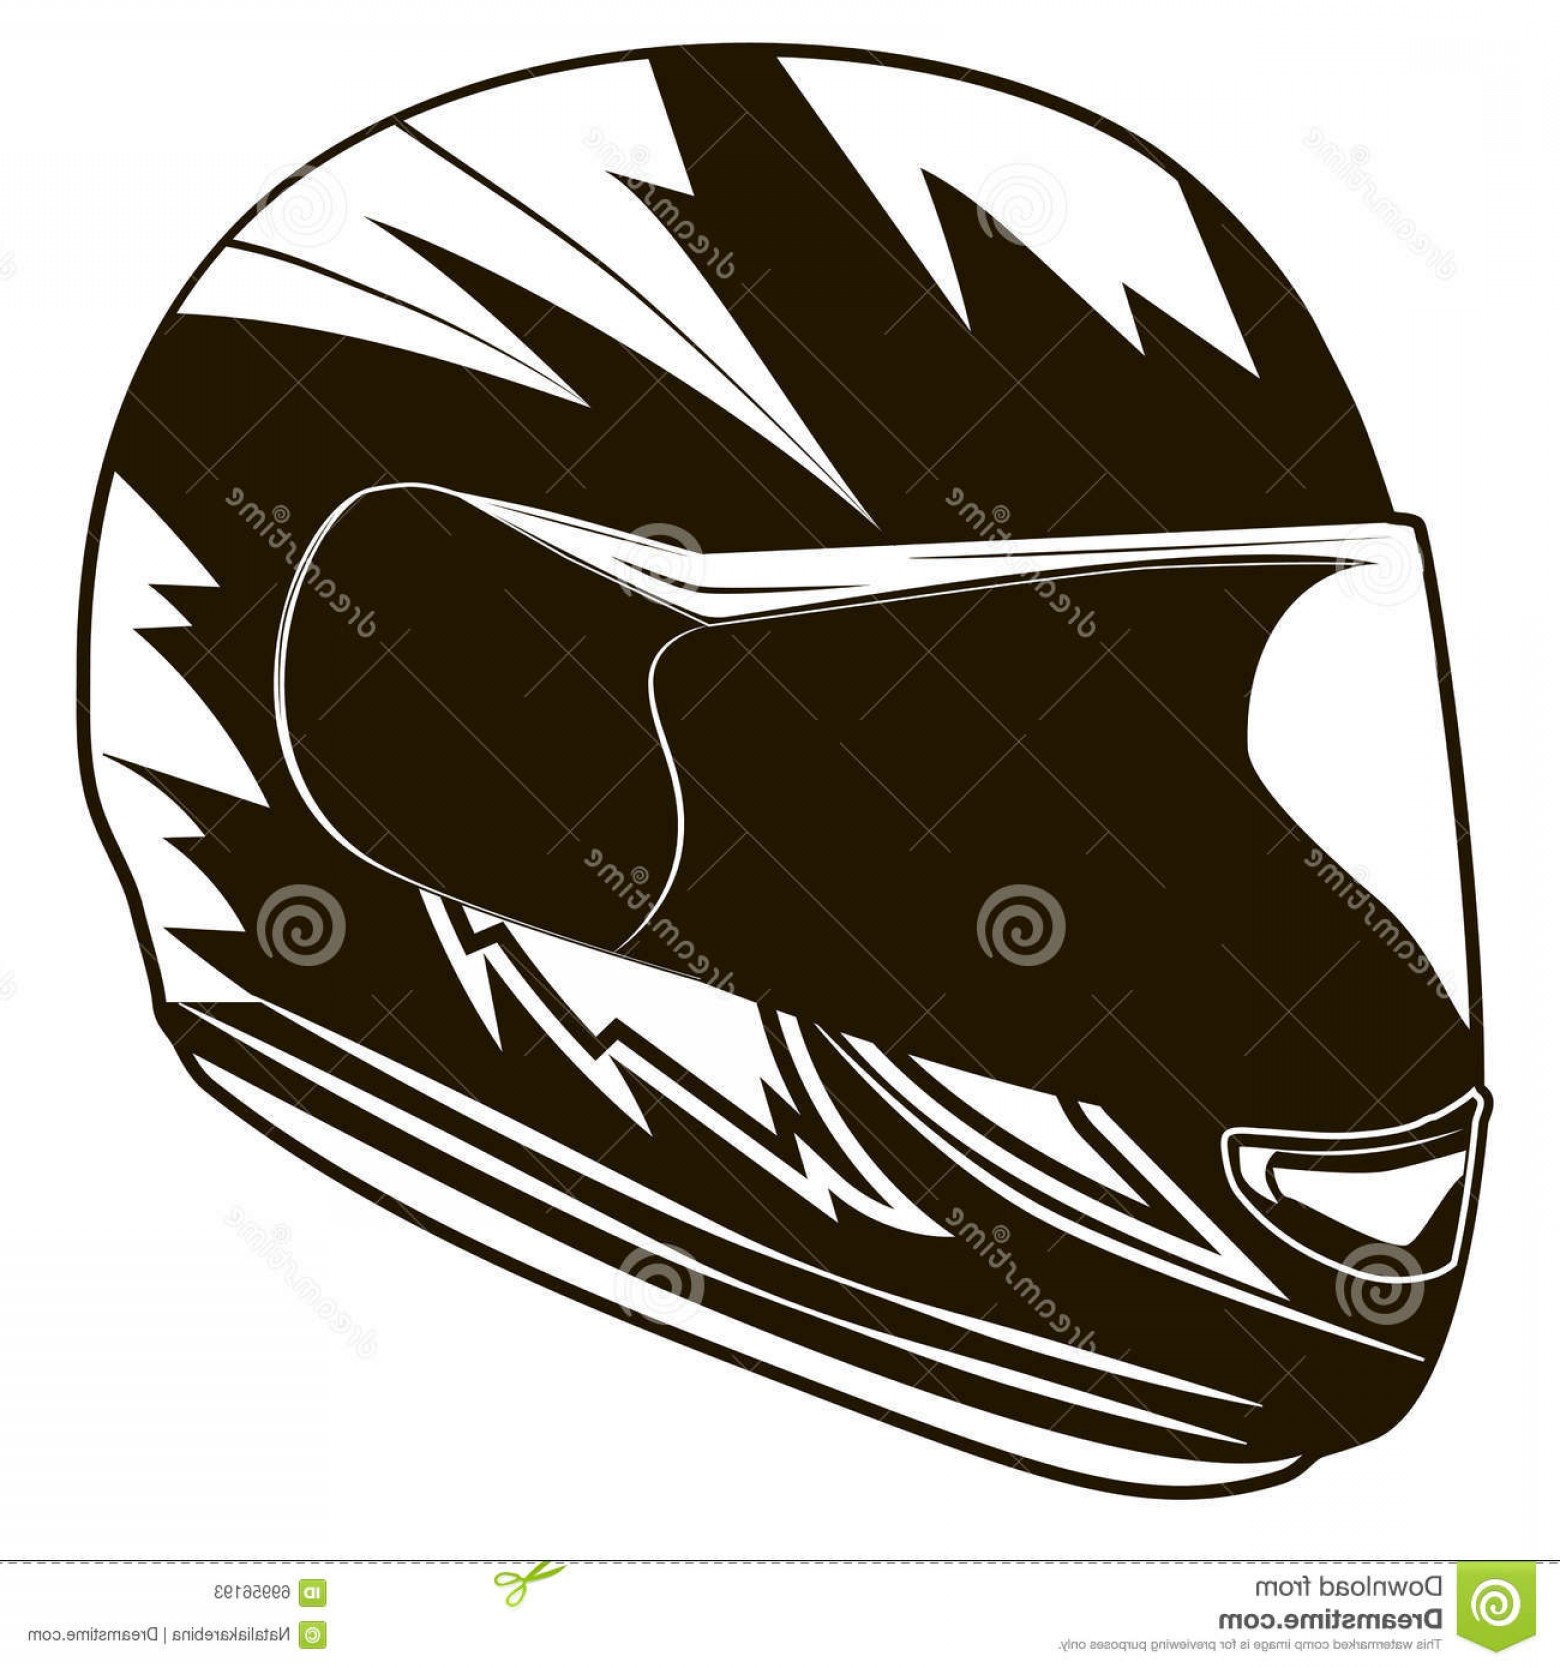 Motorcycle Helmet Vector Art: Stock Illustration Motorcycle Helmet Helmet Biker Vector Illustration Image